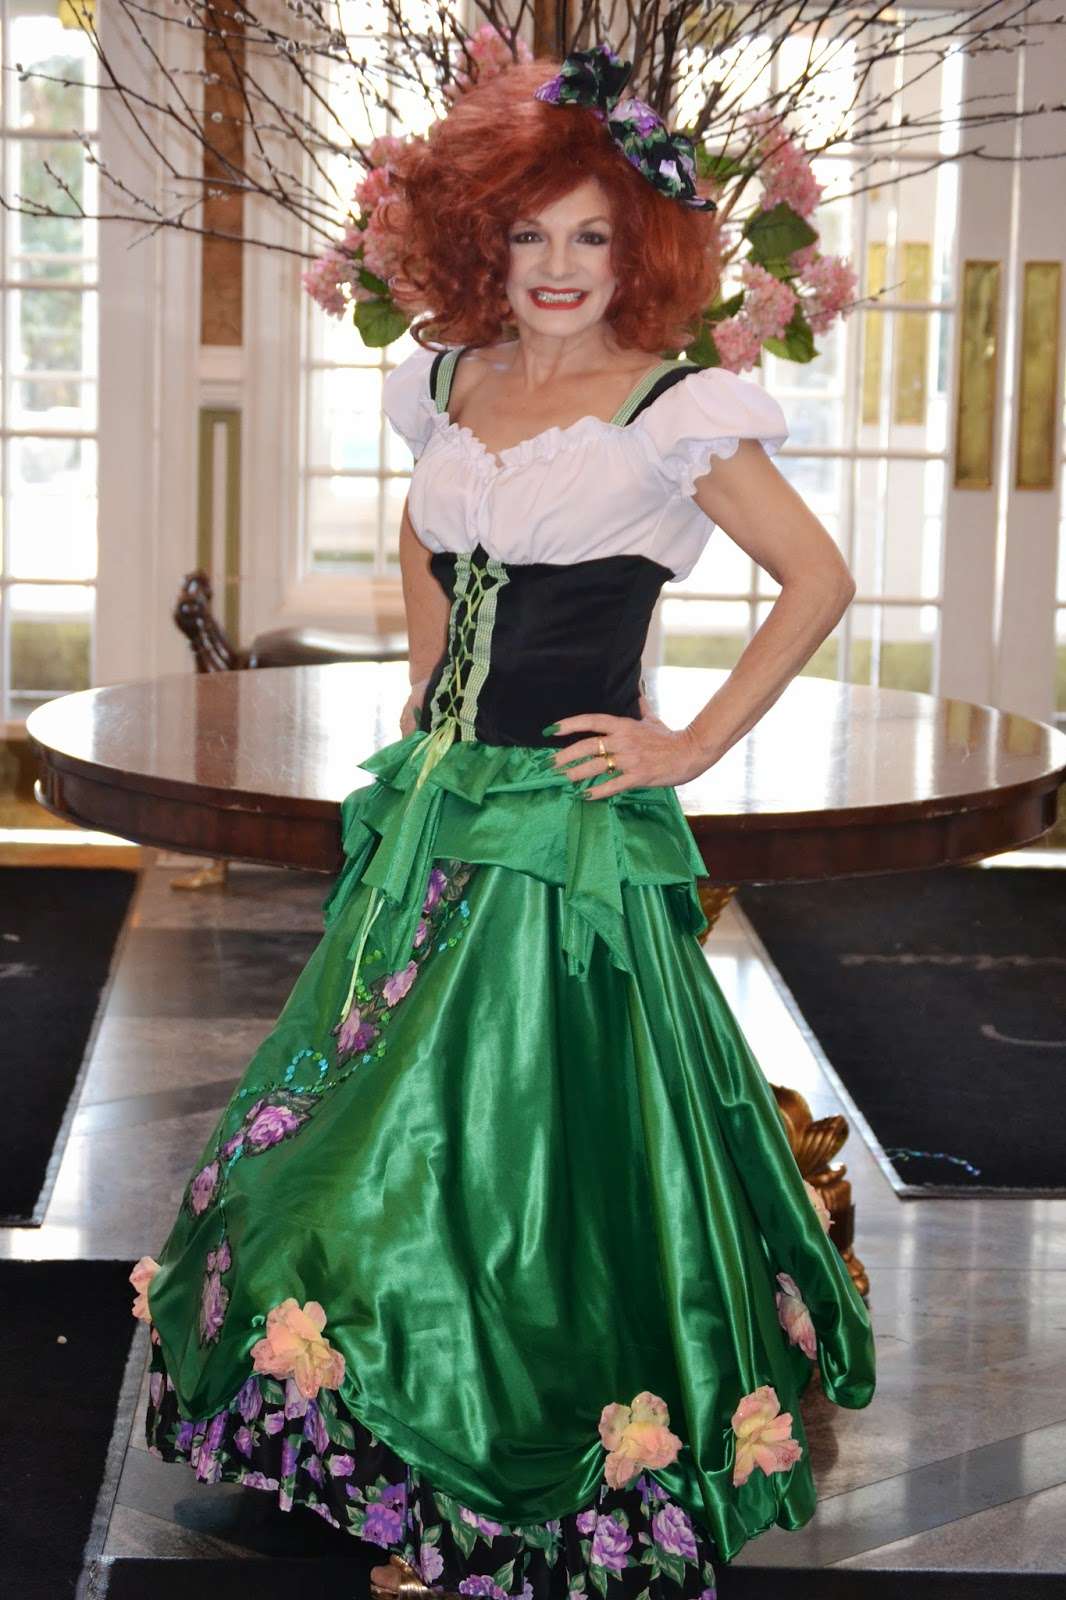 Laura Roth in Irish Costume